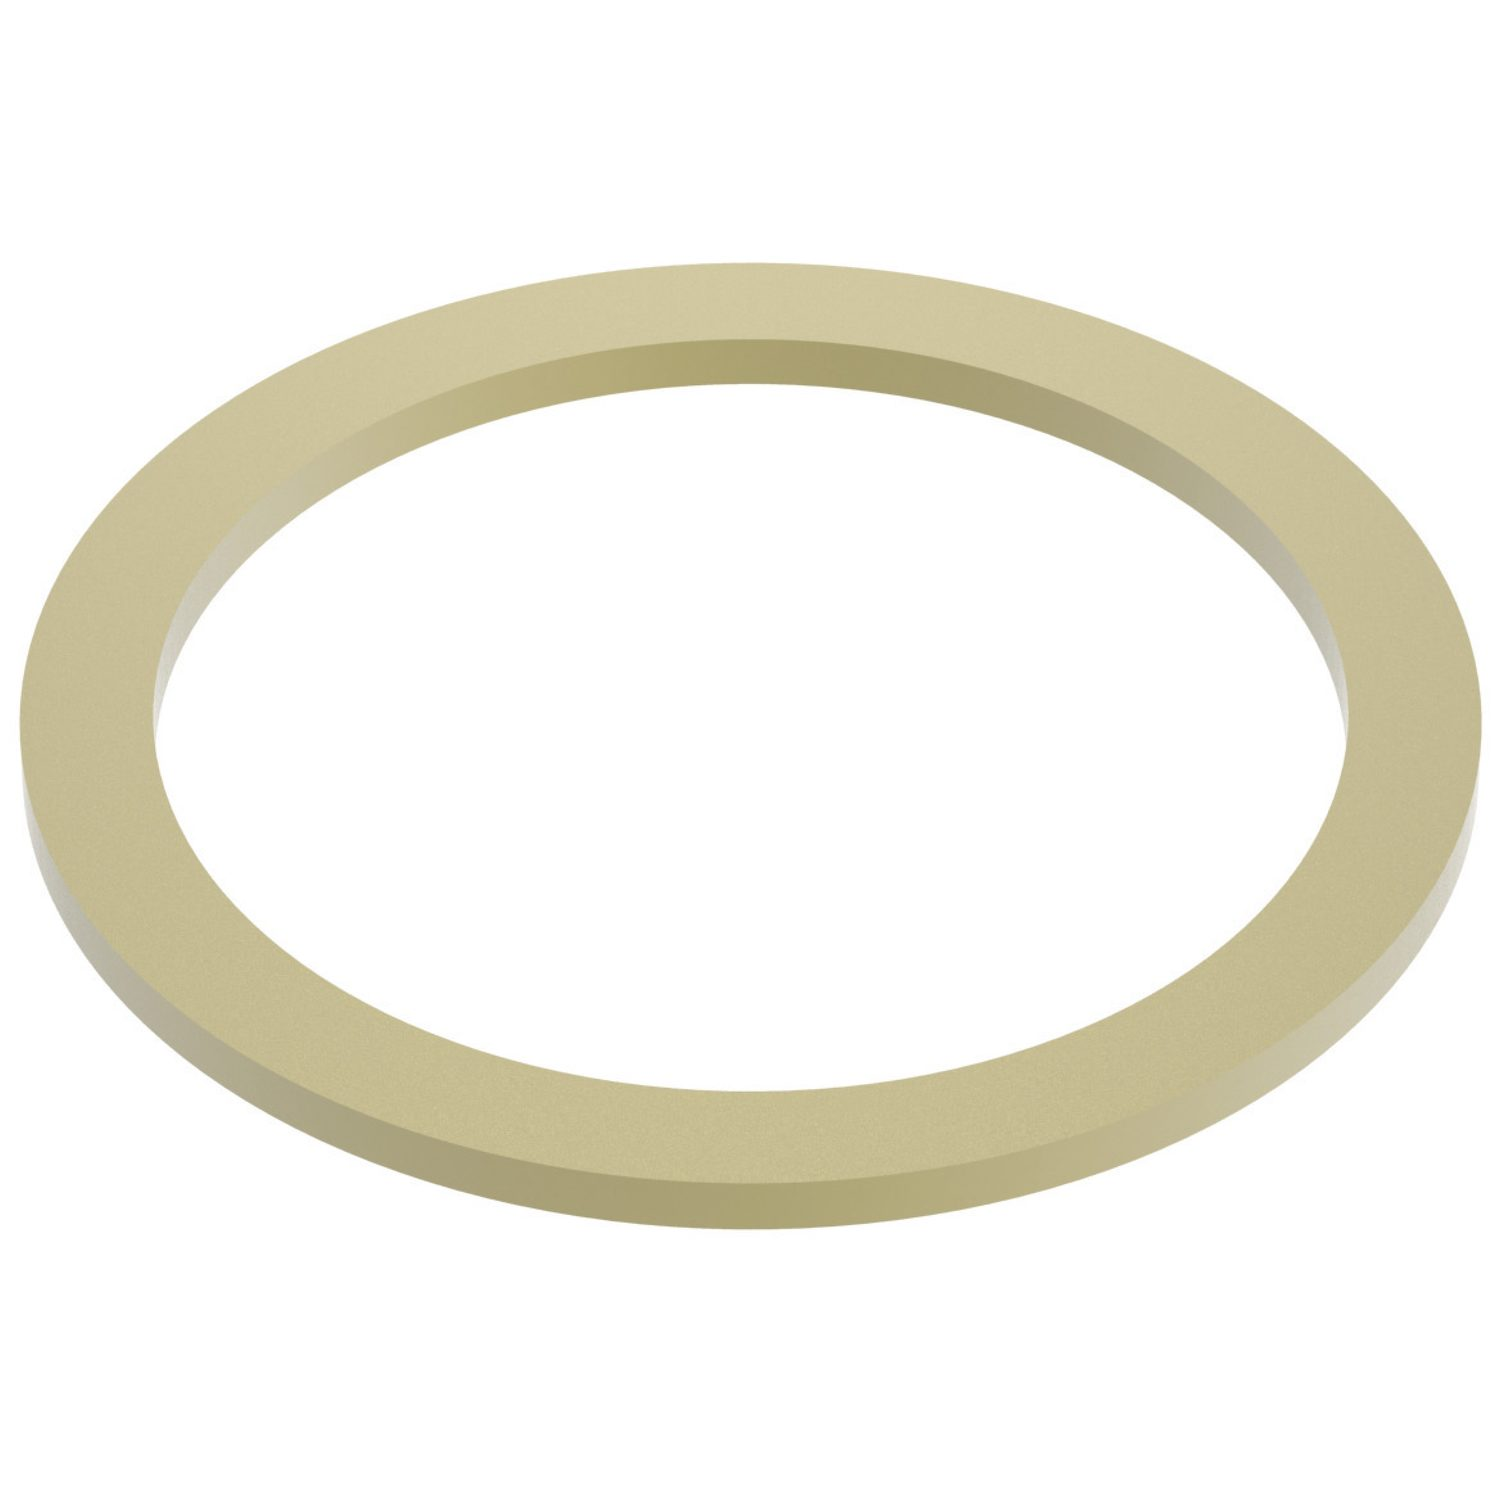 Laminated Shim Spacers Laminated shim spacers, brass. With 0.05mm peelable laminations.